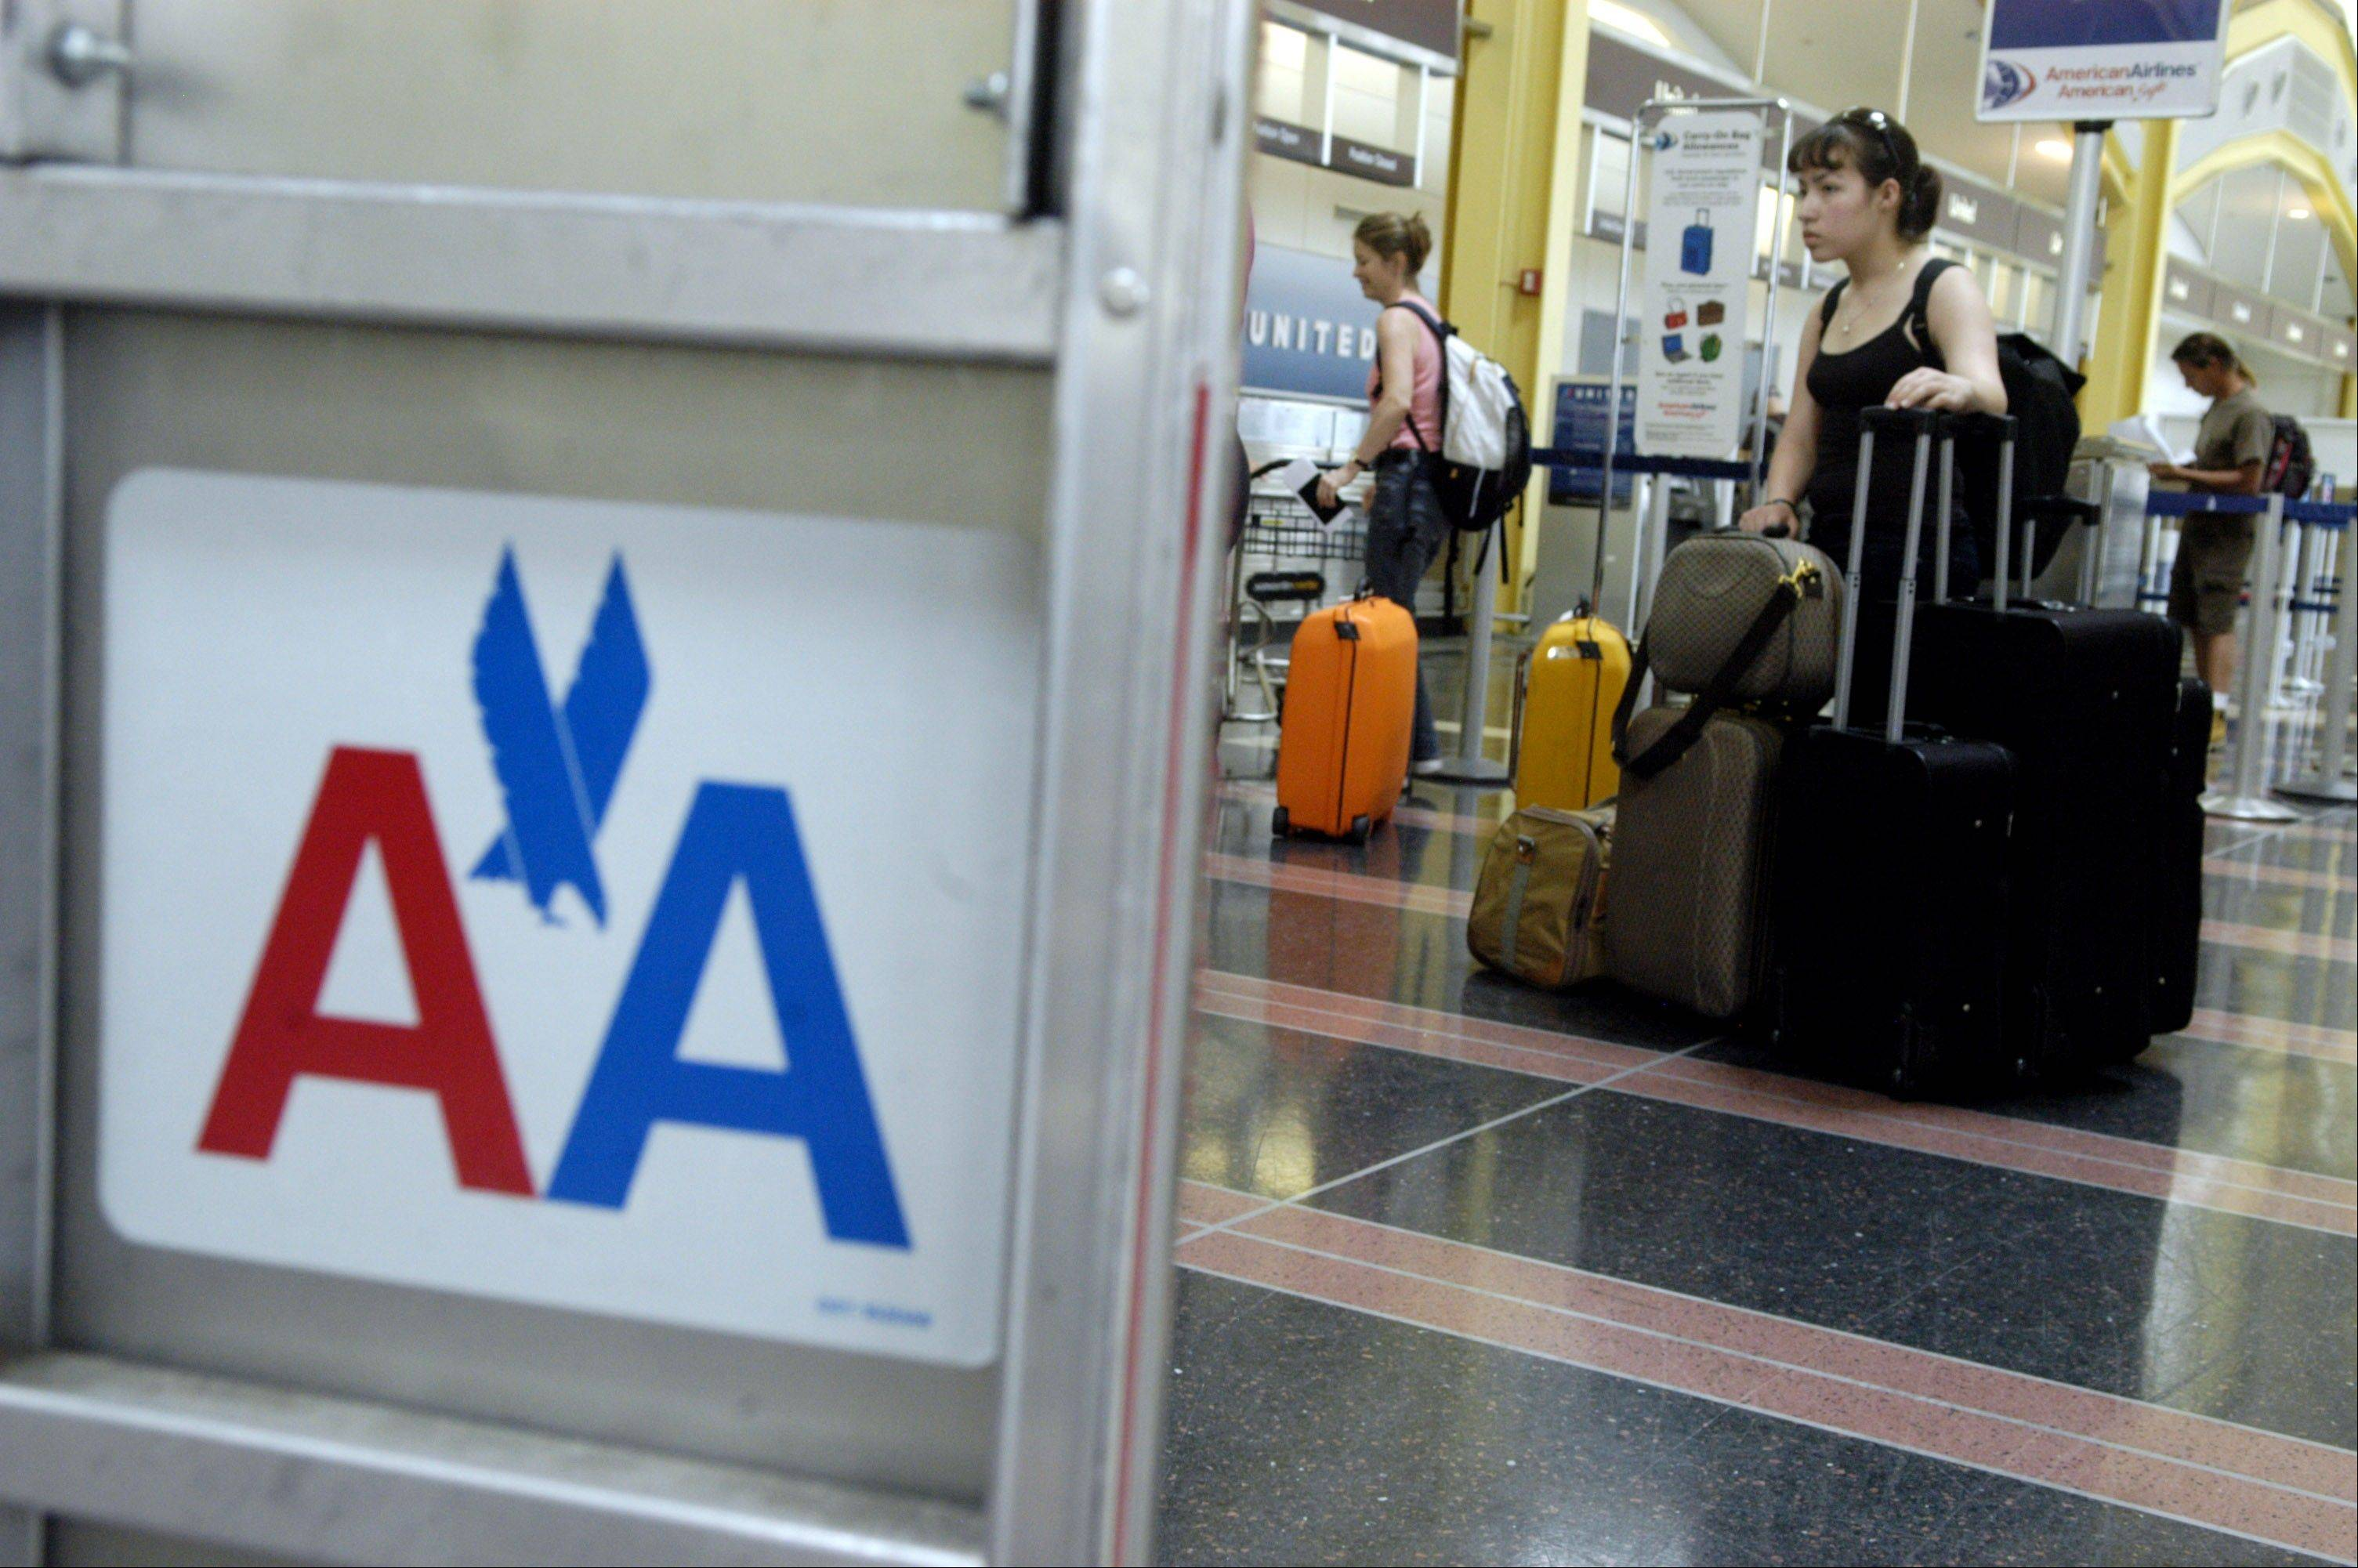 A federal bankruptcy judge signaled his support for the $11 billion merger of American Airlines and US Airways.